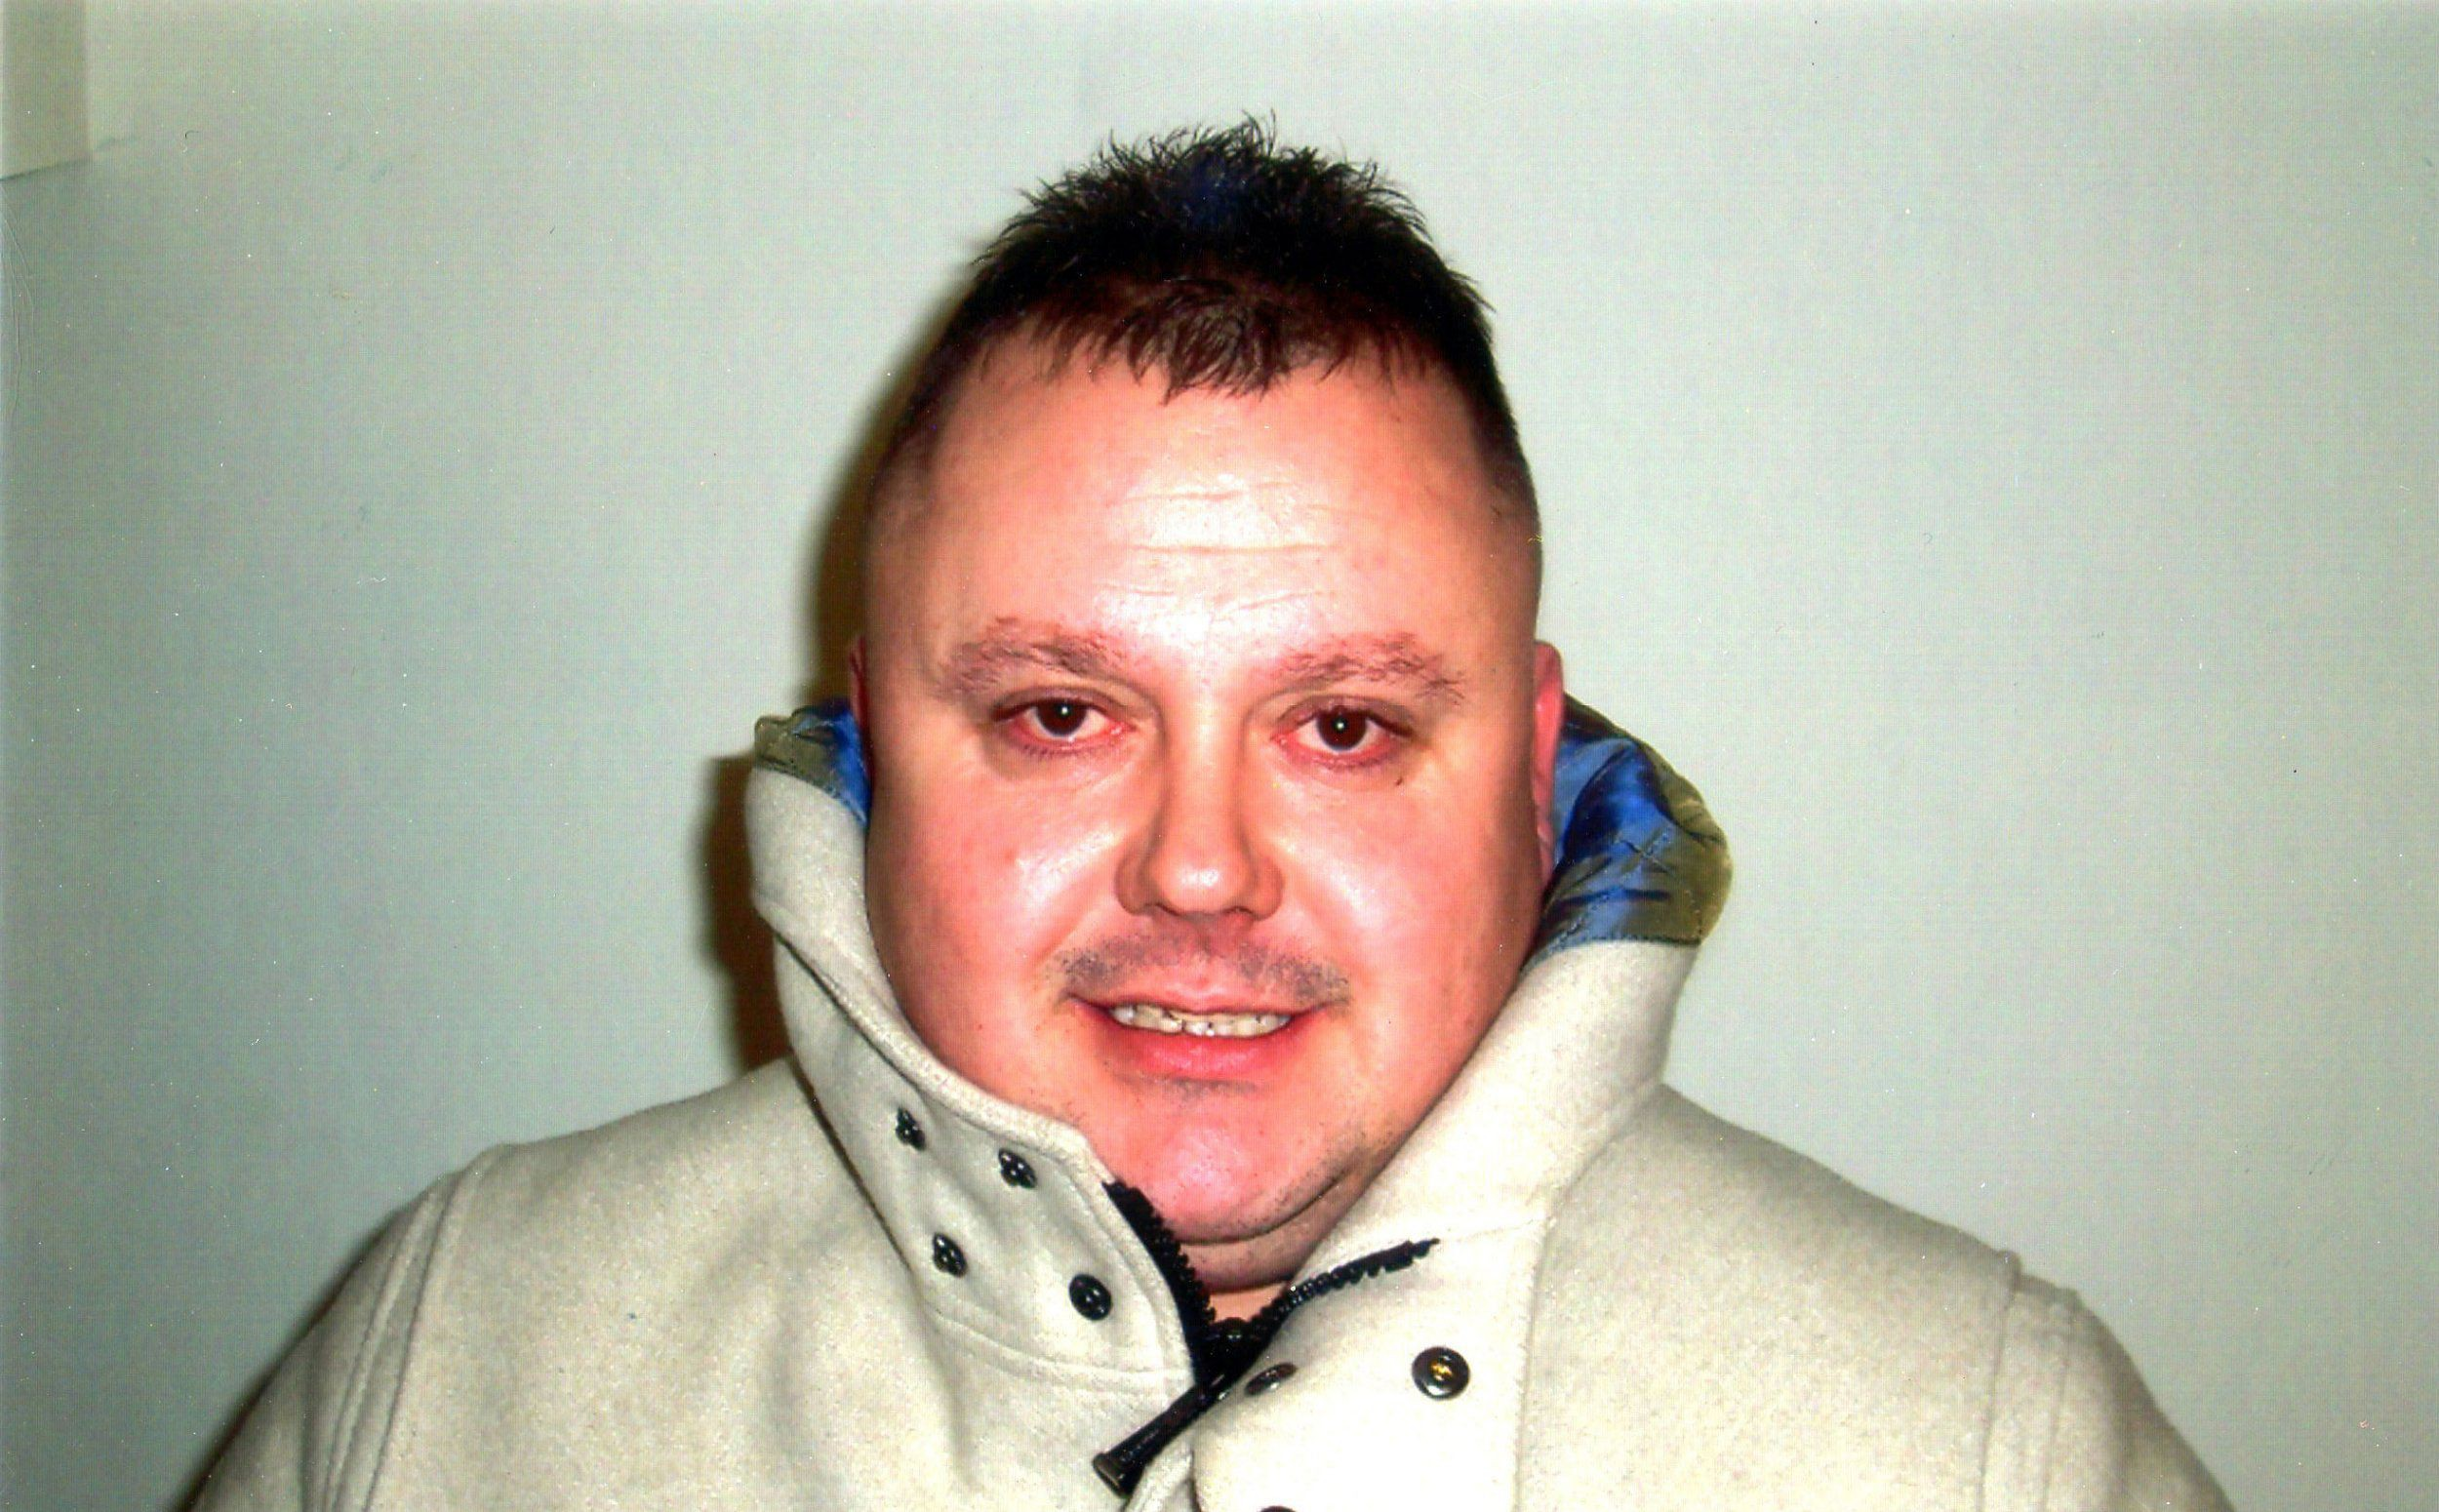 Mandatory Credit: Photo by REX/Shutterstock (841994c) Levi Bellfield Levi Bellfield, convicted murderer, Britain - 2000s Levi Bellfield in around 2003. Bellfield has been dubbed the 'Bus Stop Beast' after being found guilty in February 2008 of murdering Marsha McDonnell and Amelie Delagrange and the attempted murder of Kate Sheedy. The wheel-clamper stalked bus stops and bus routes and targeted all three women as they made their way home alone at night. Police are looking at trying to connect him to other murders, including 13 year old Millie Dowler who was killed in 2002.